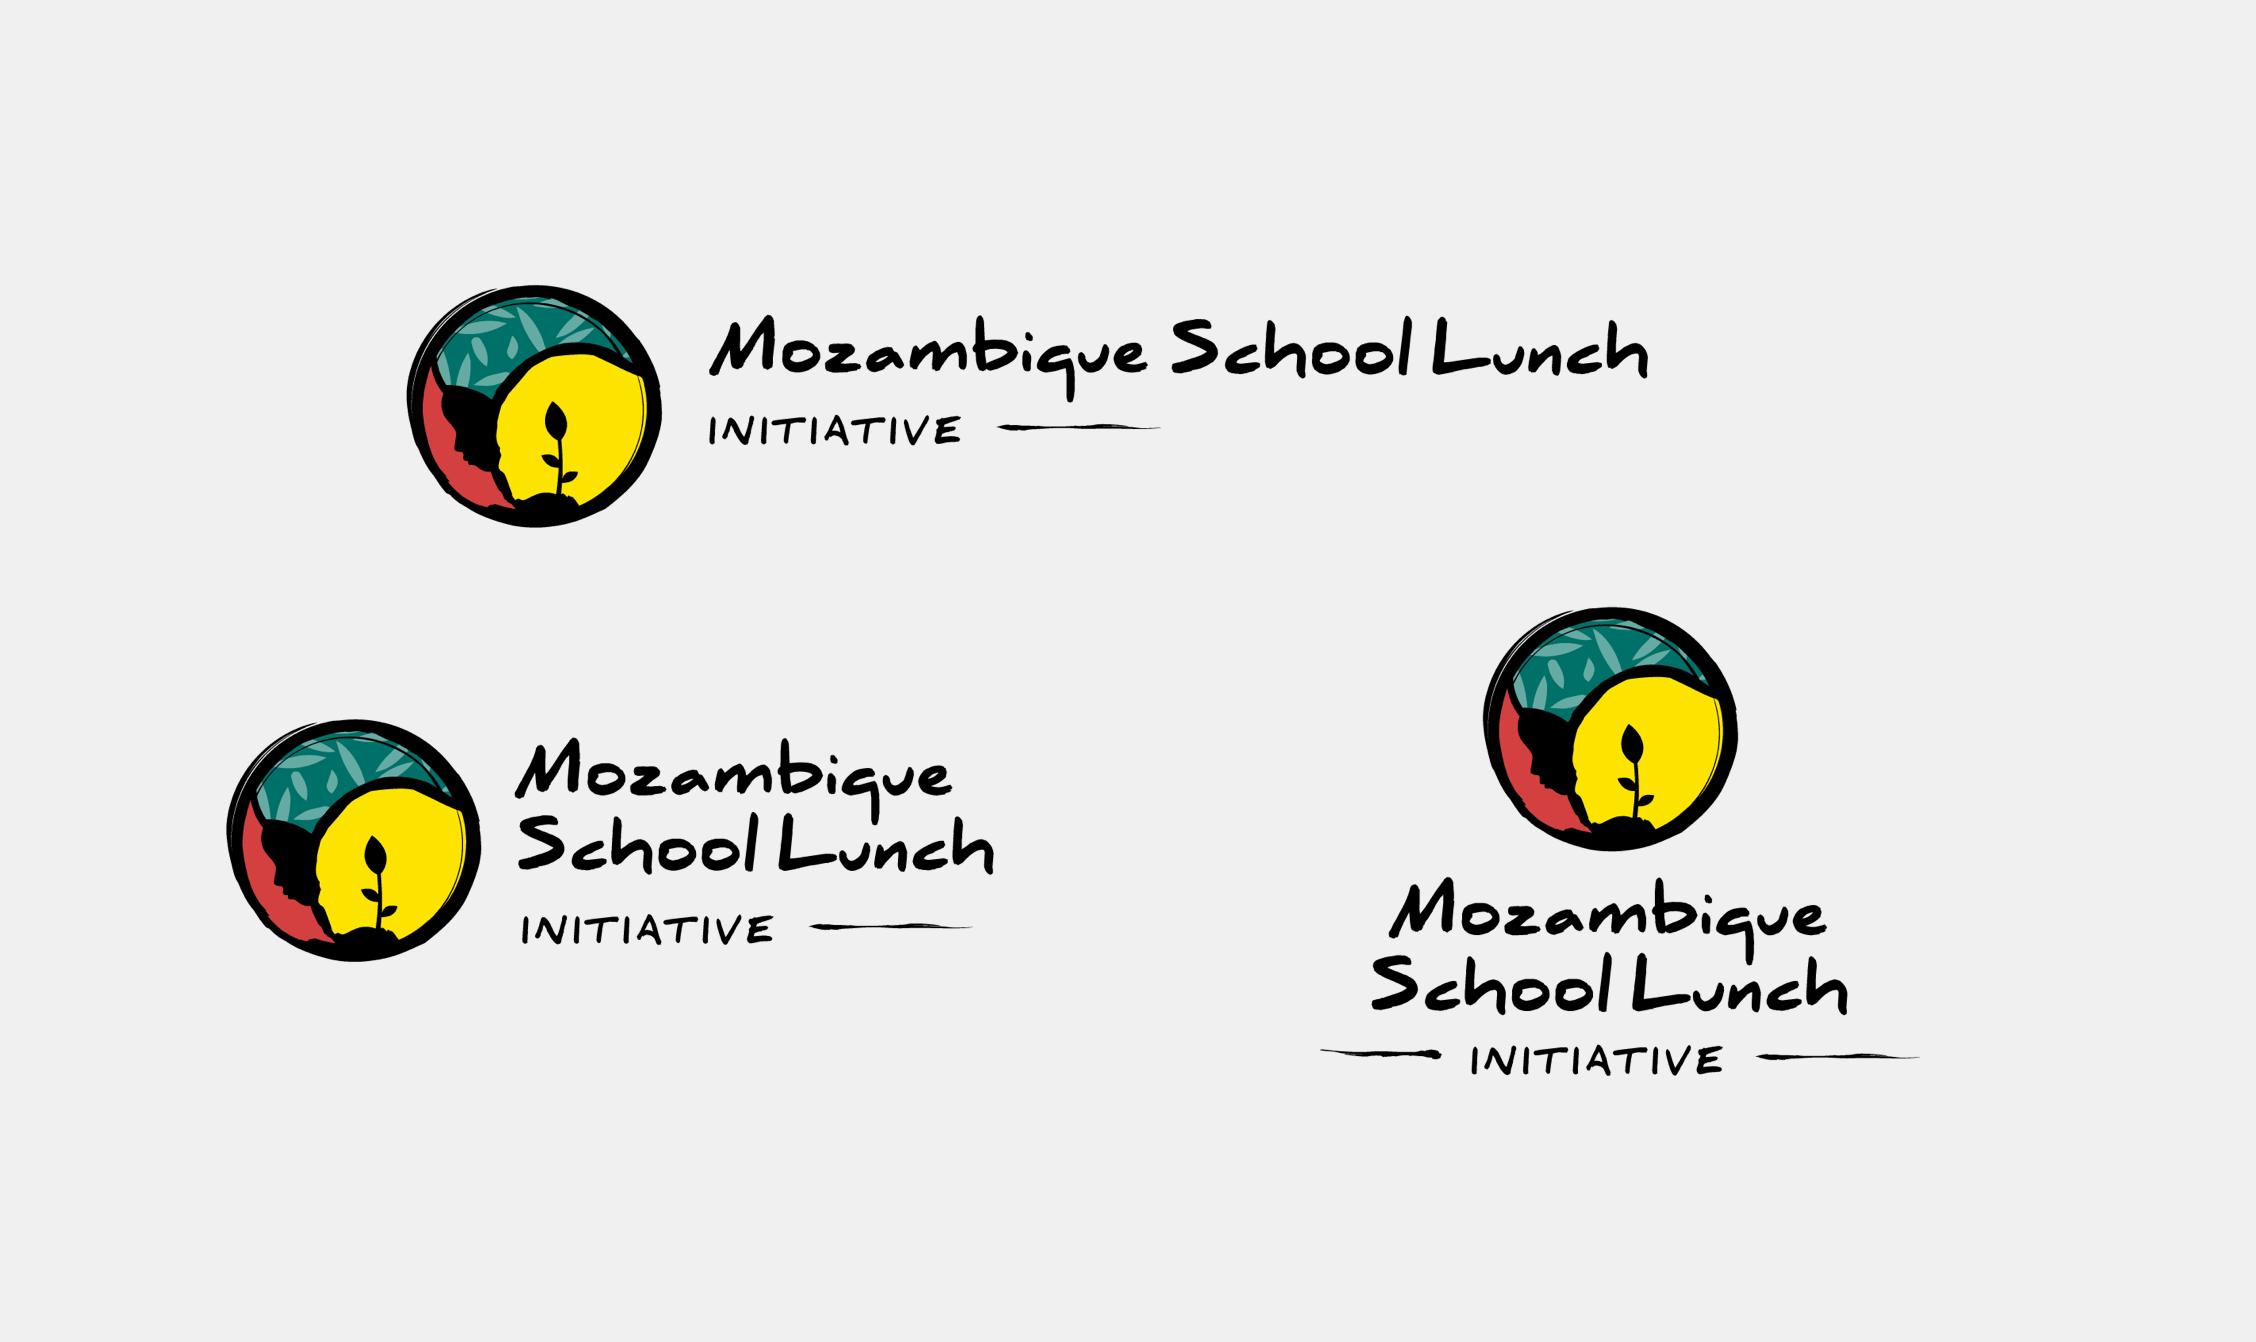 A series of Mozambique School Lunch Initiative logo lockups